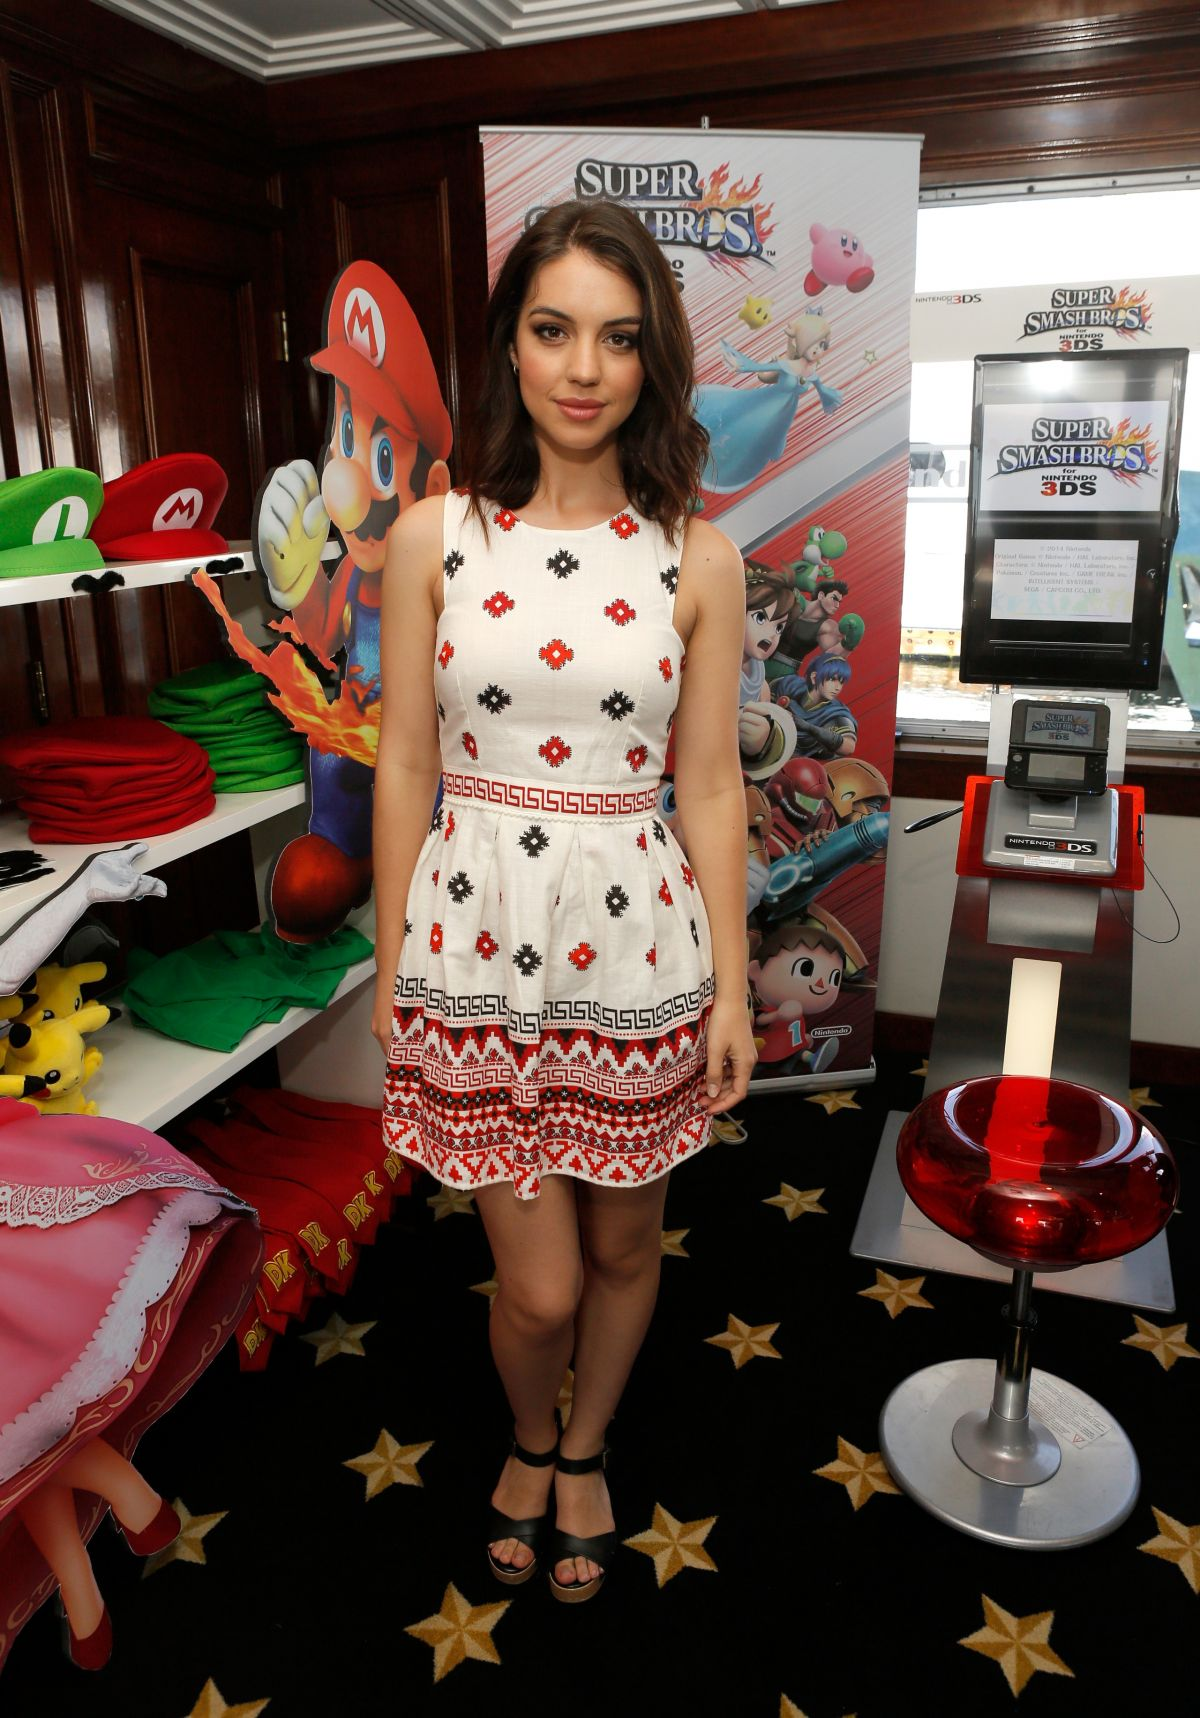 ADELAIDE KANE at Nintendo Lounge at Comic-con 2014 in San Diego